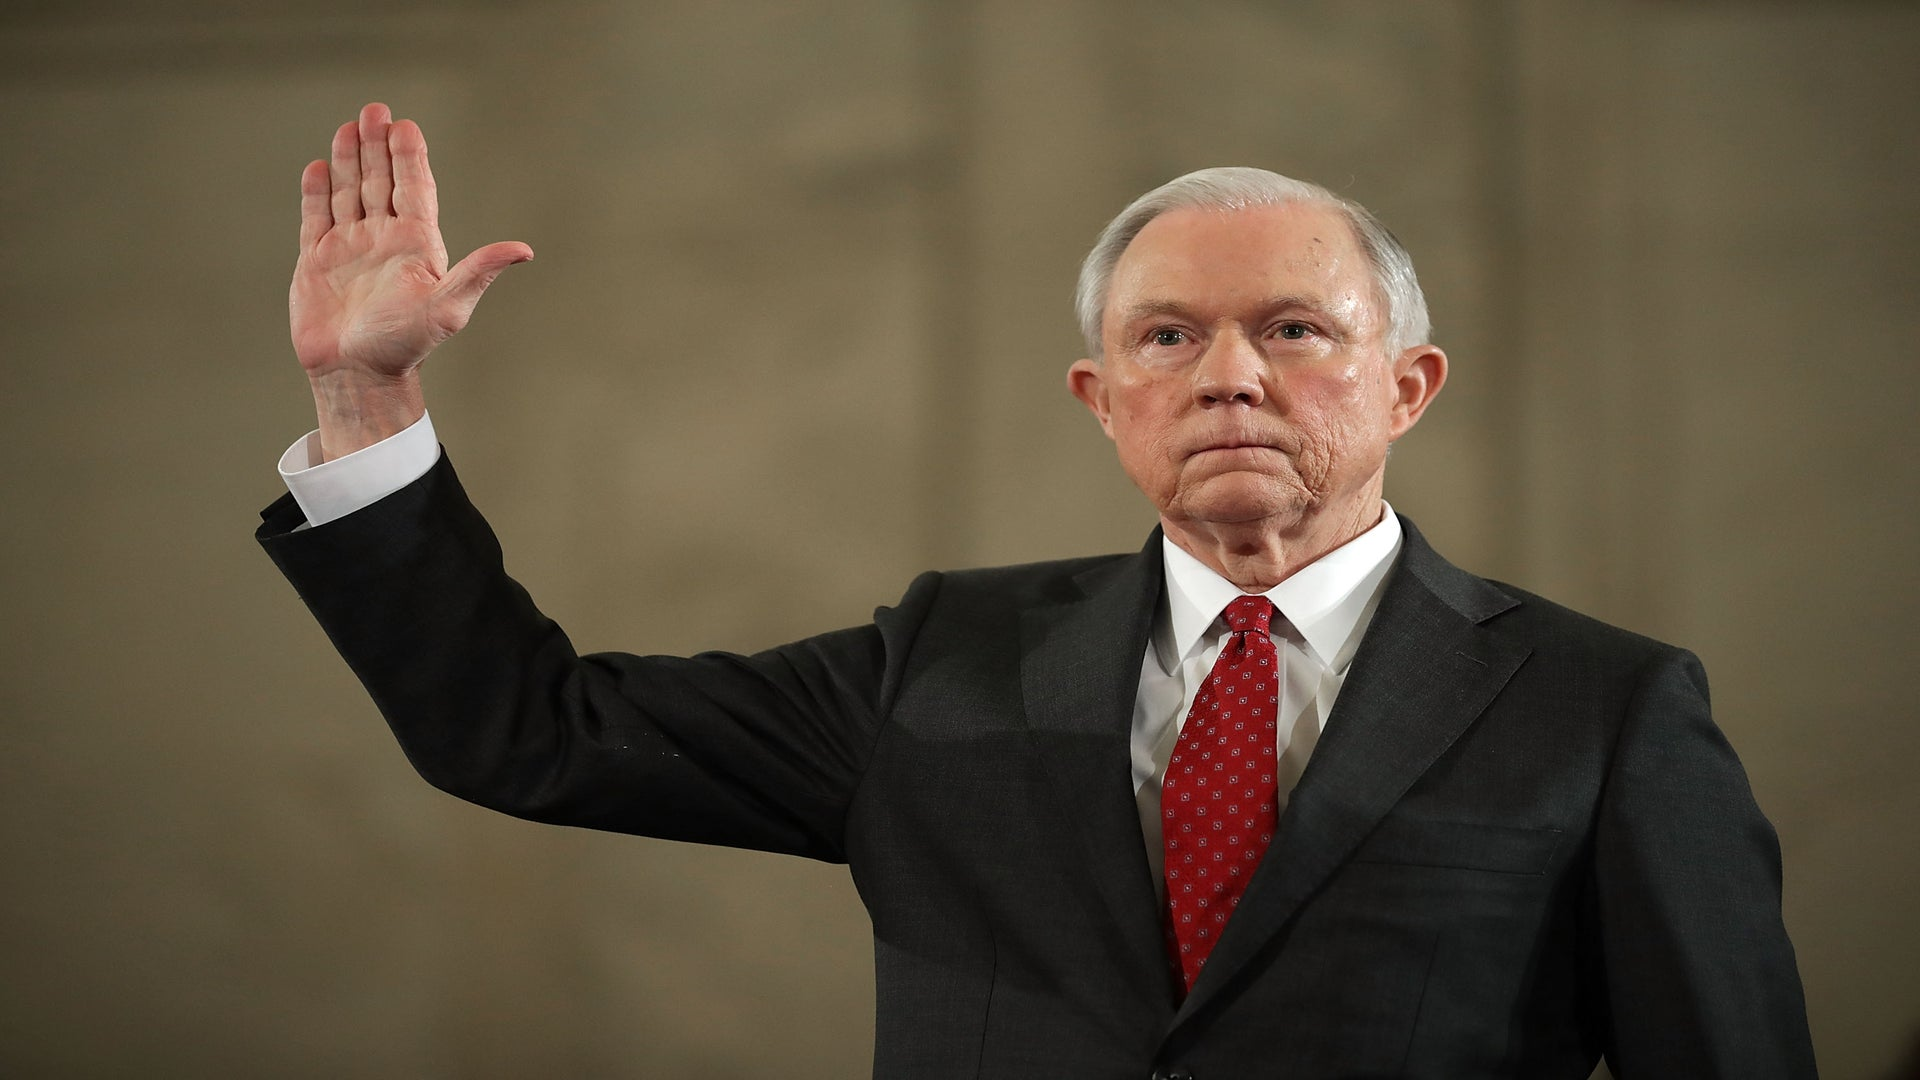 The Confirmation Of Jeff Sessions Would Be An Assault On Voting Rights And Equality